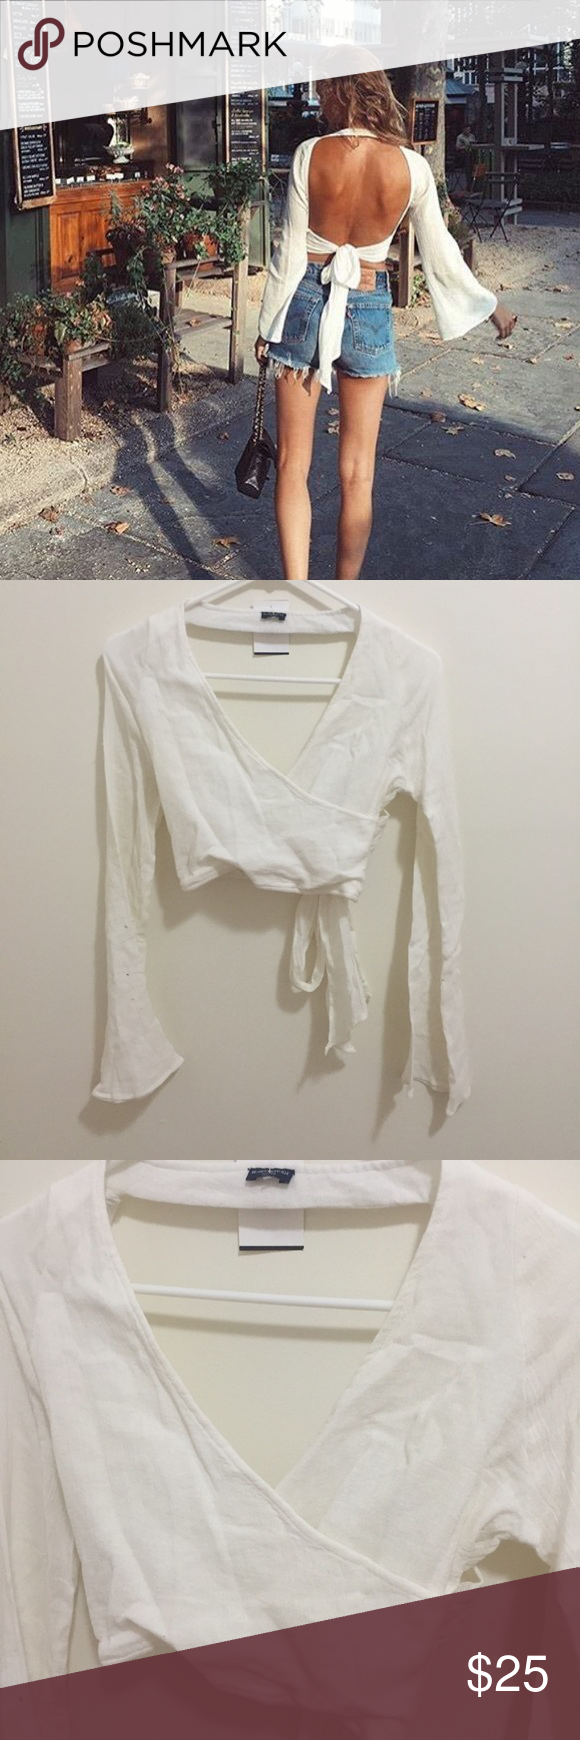 Brandy Melville open back top Cream open back bell sleeves top. No trades Brandy Melville Tops Tees - Long Sleeve